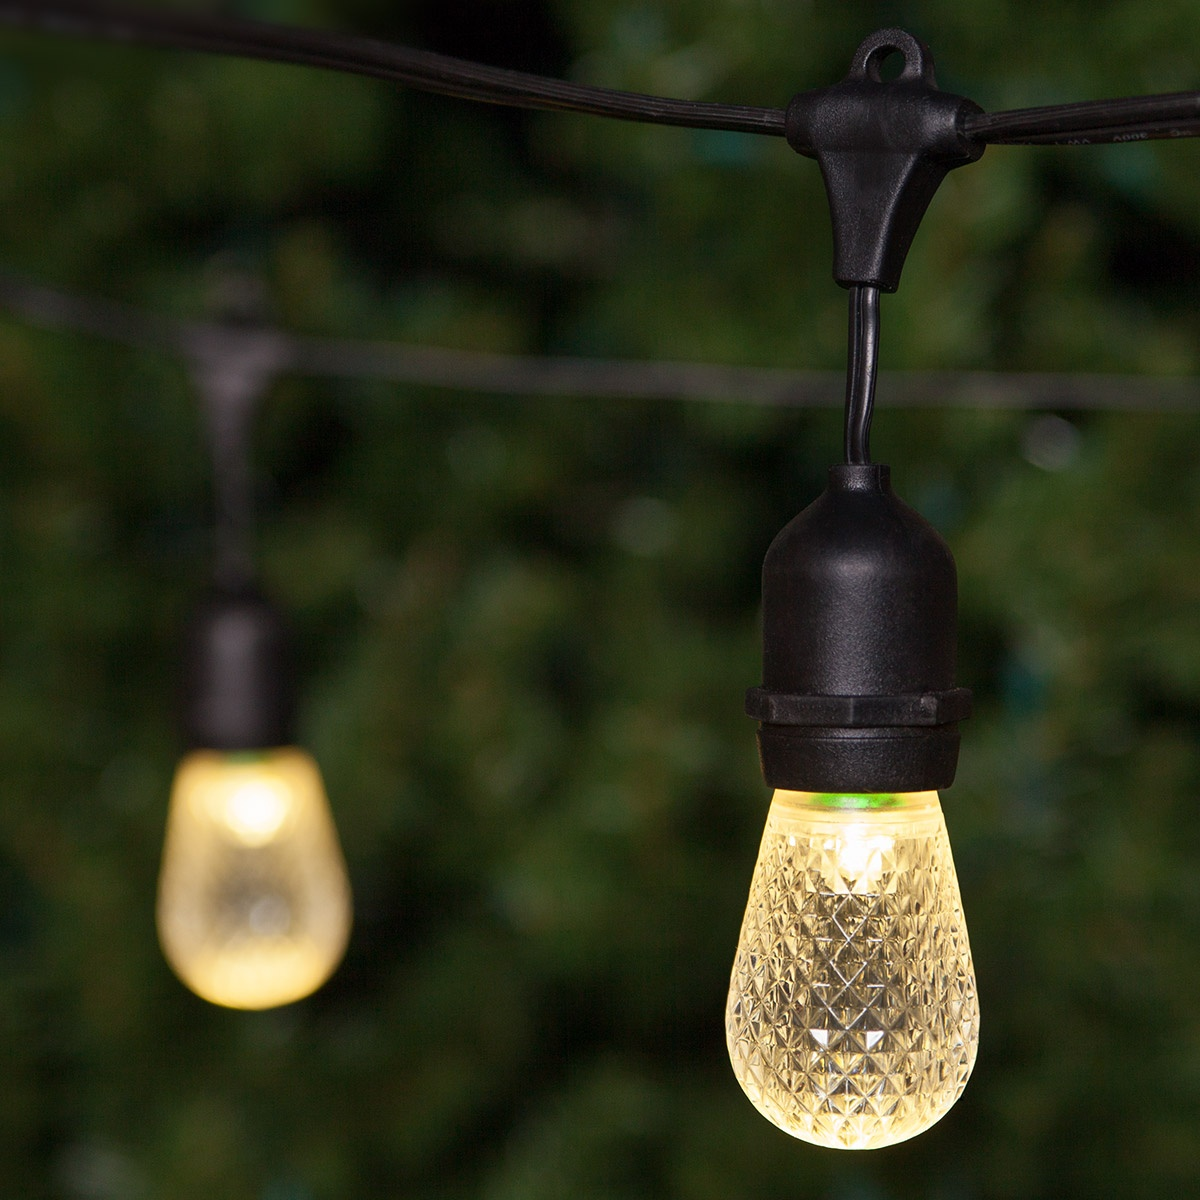 String Lights Backyard Led : Patio Lights - Commercial Warm White LED Patio String Lights, 24 S14 E26 Bulbs Black Wire